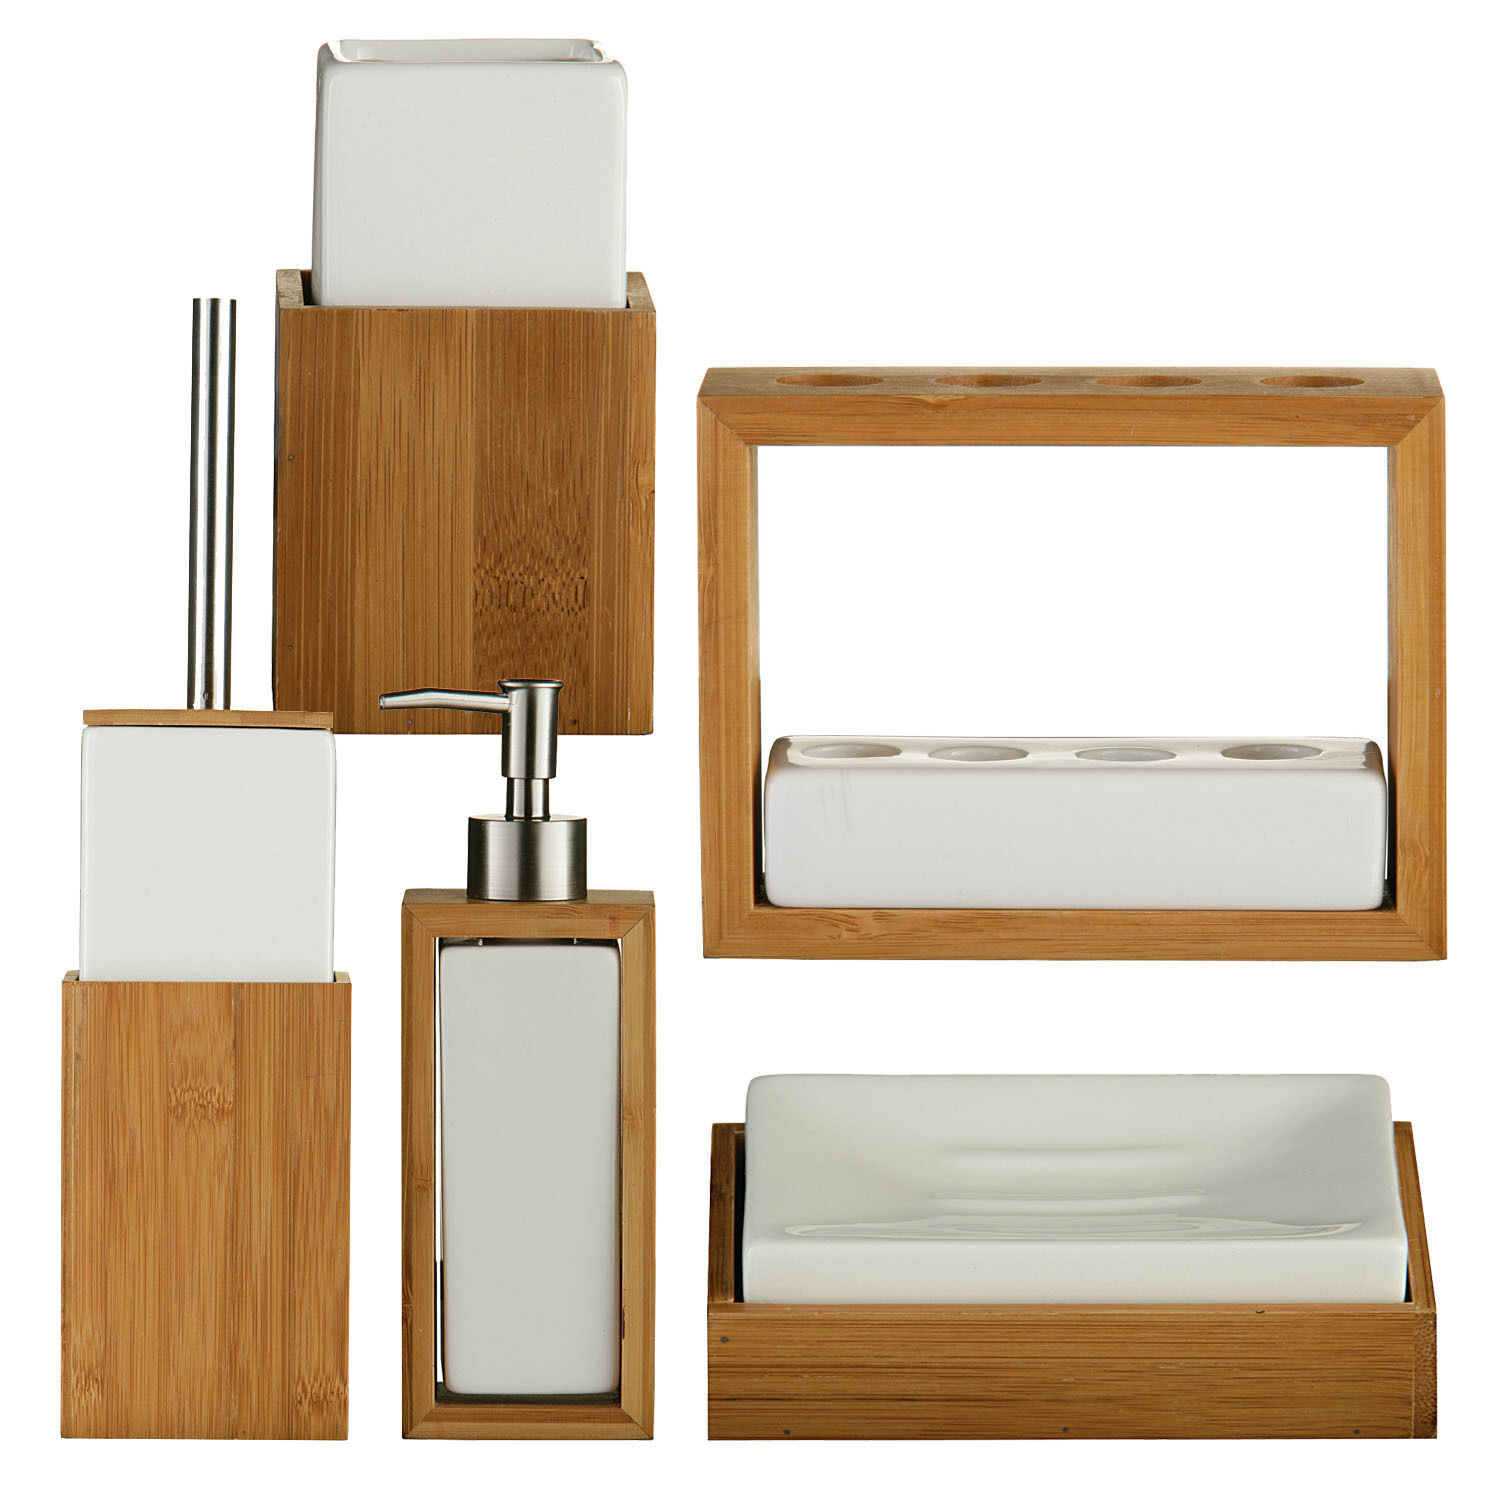 Bathroom Furniture Accessories With Wonderful Type | eyagci.com